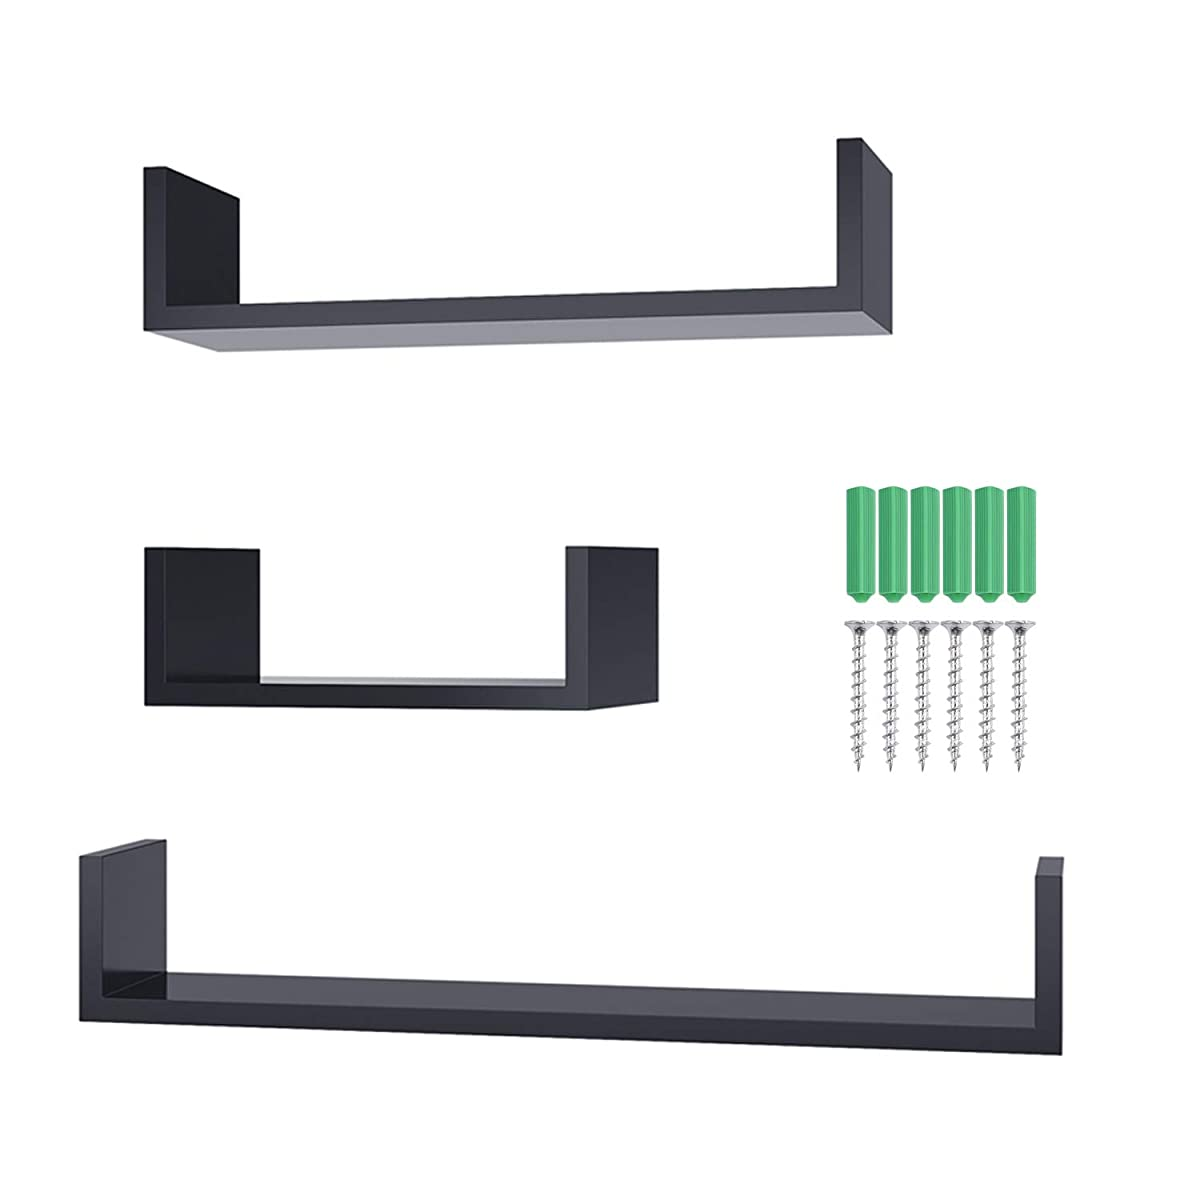 Homdox Wall Shelves Set of 3 Large Floating U Shelves DIY, Black